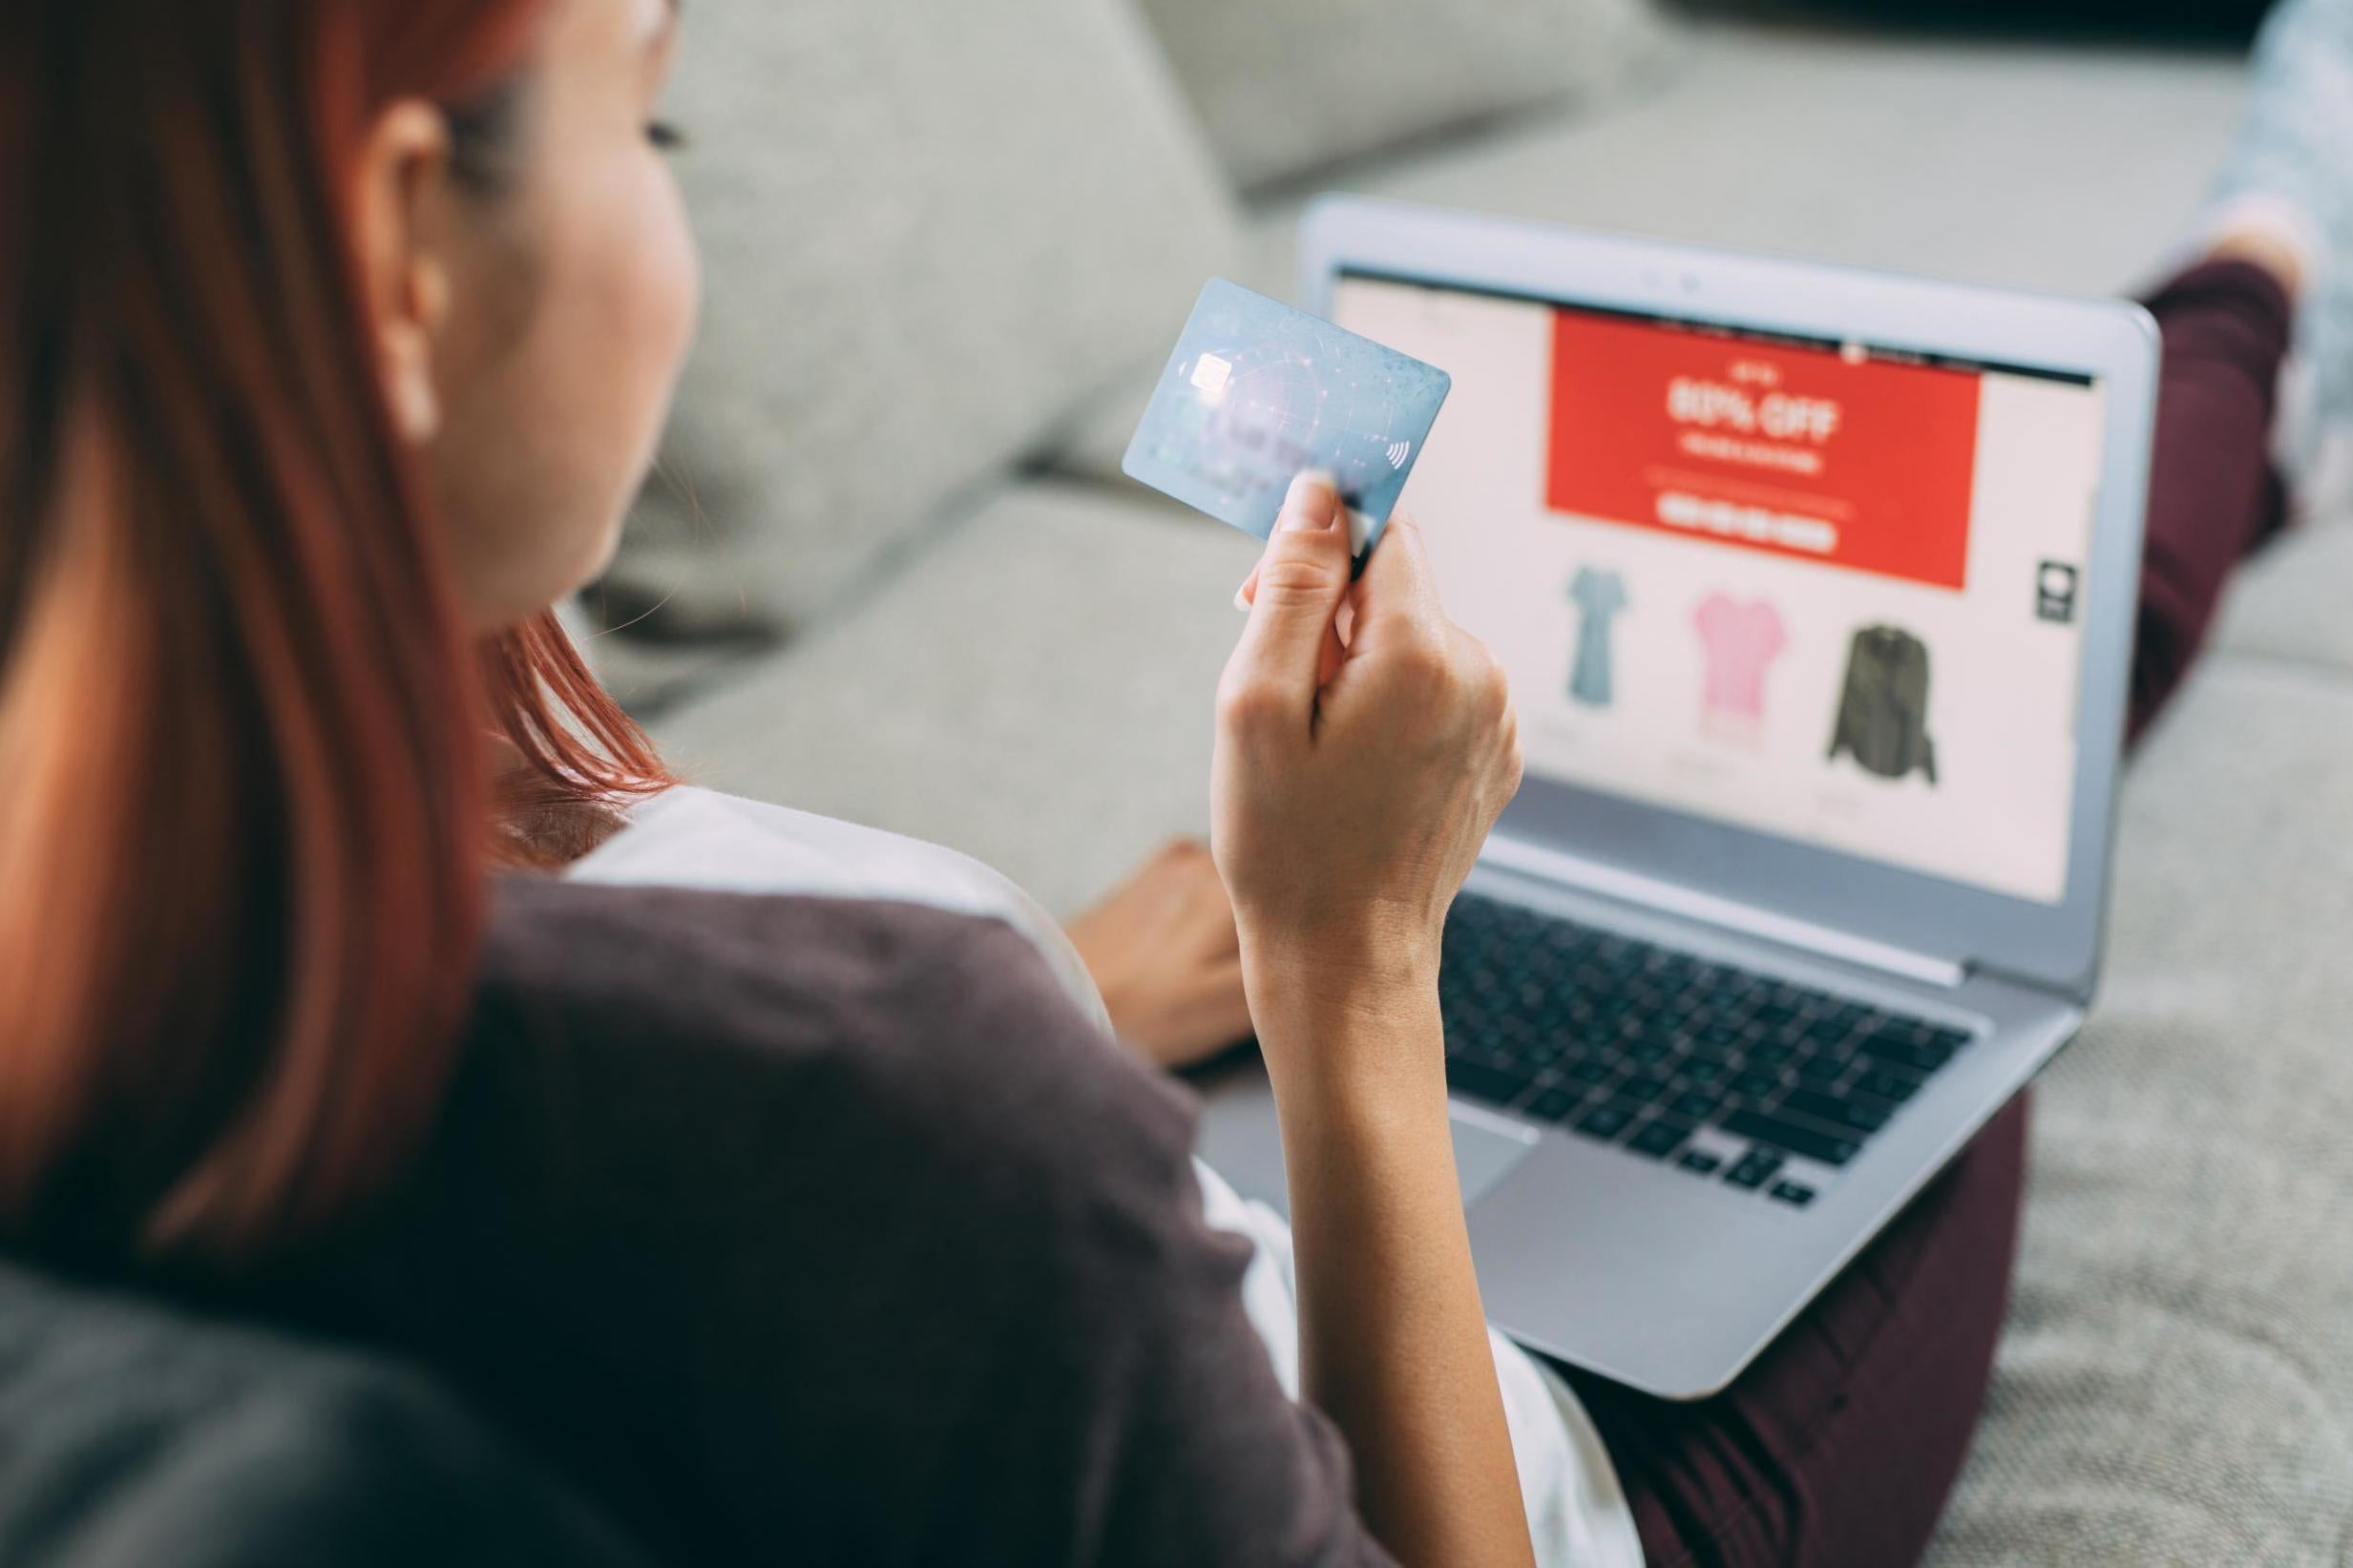 Night-time online shoppers 'at risk of exploitation'